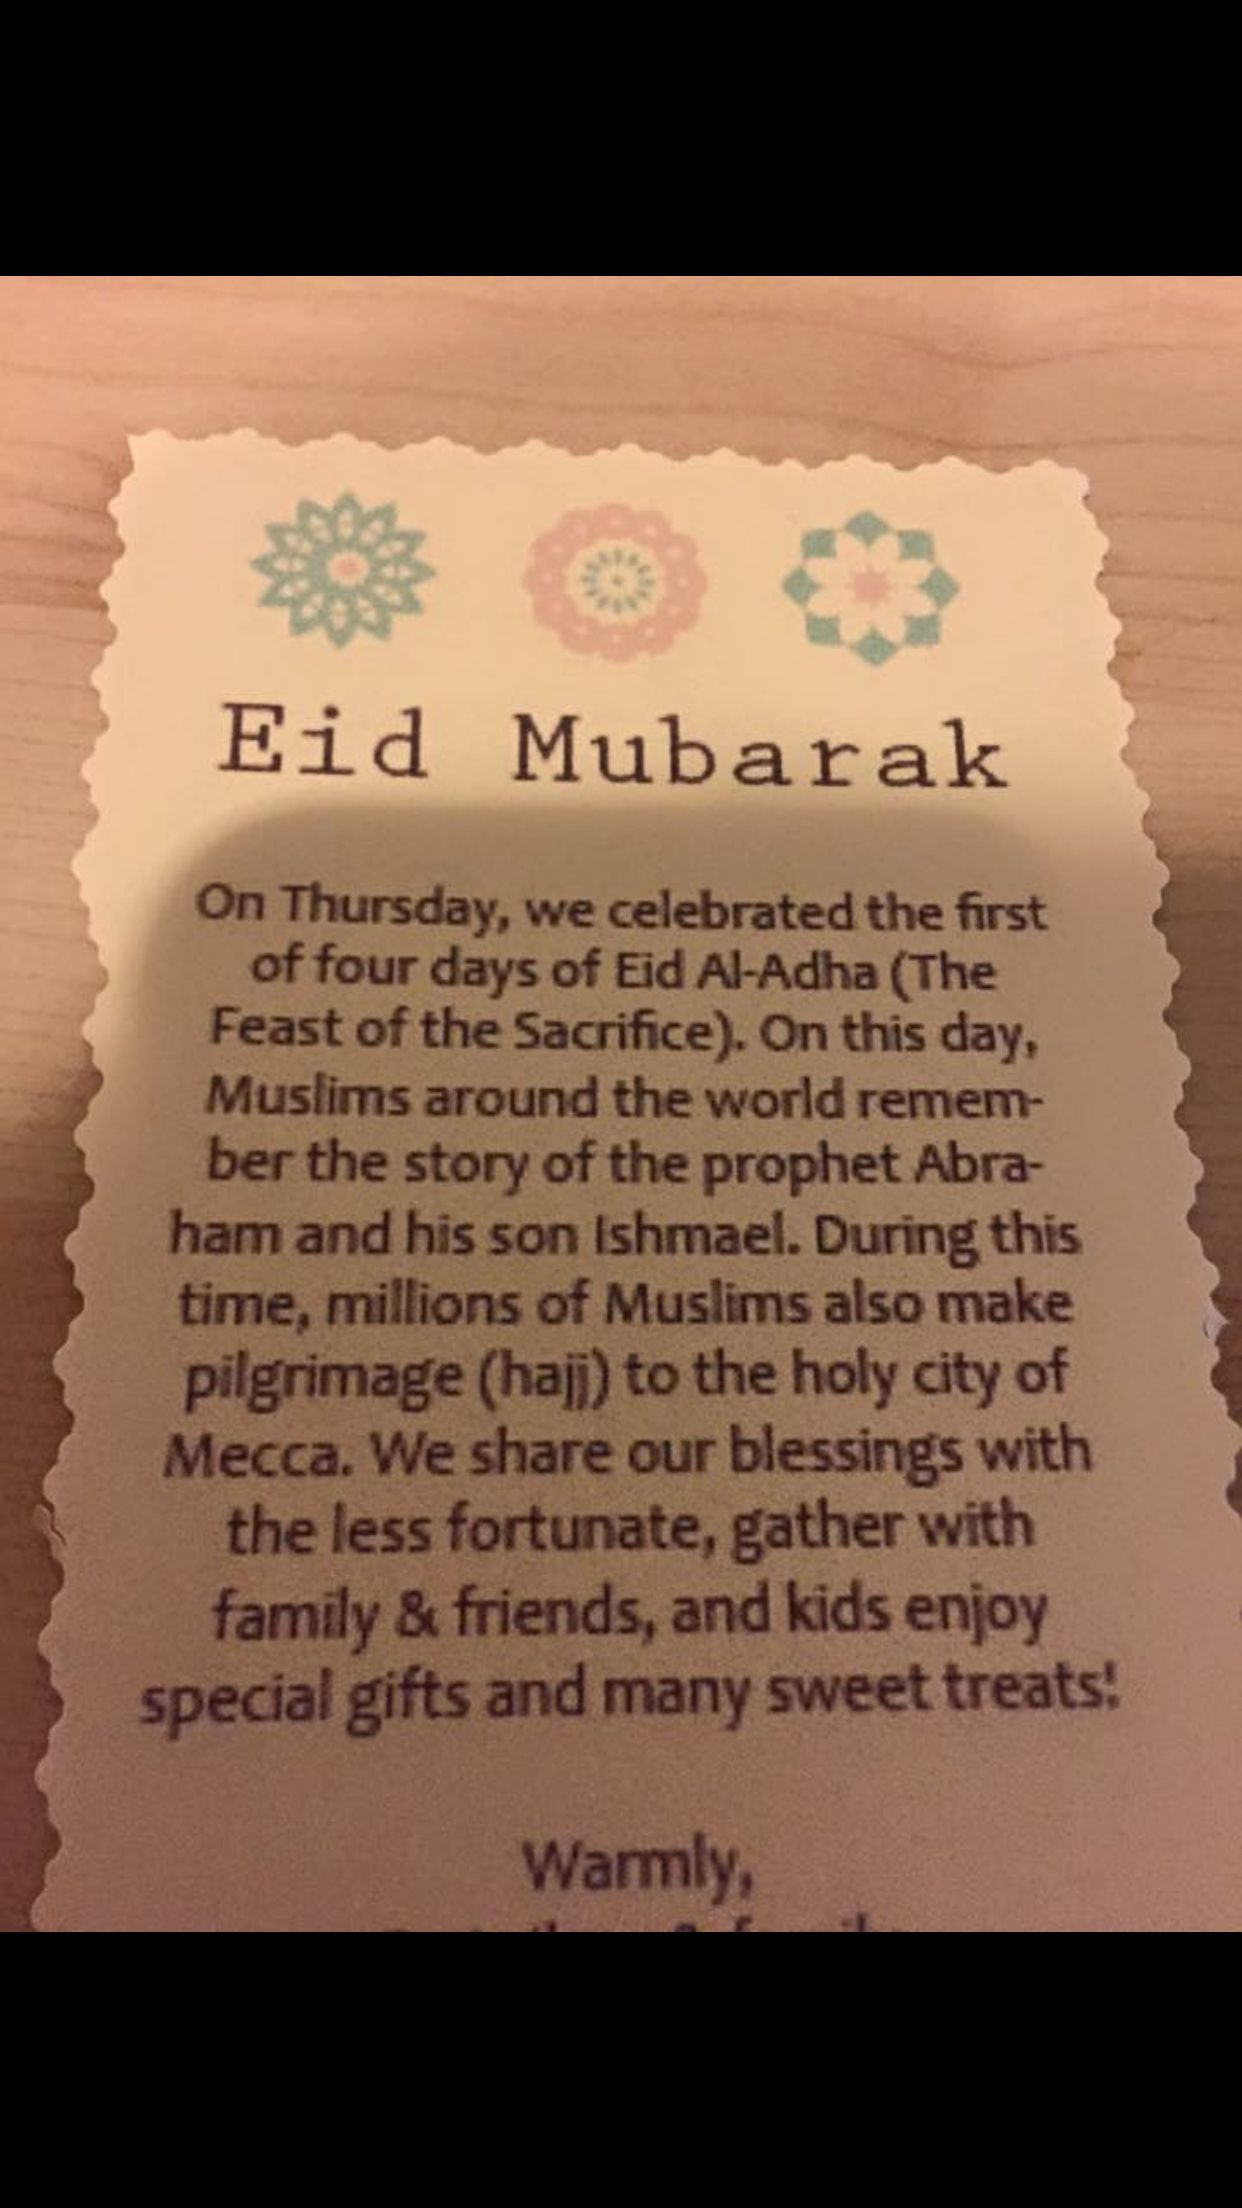 Eid al adha letter for classmates and neighbors to understand the eid al adha letter for classmates and neighbors to understand the holiday thecheapjerseys Image collections